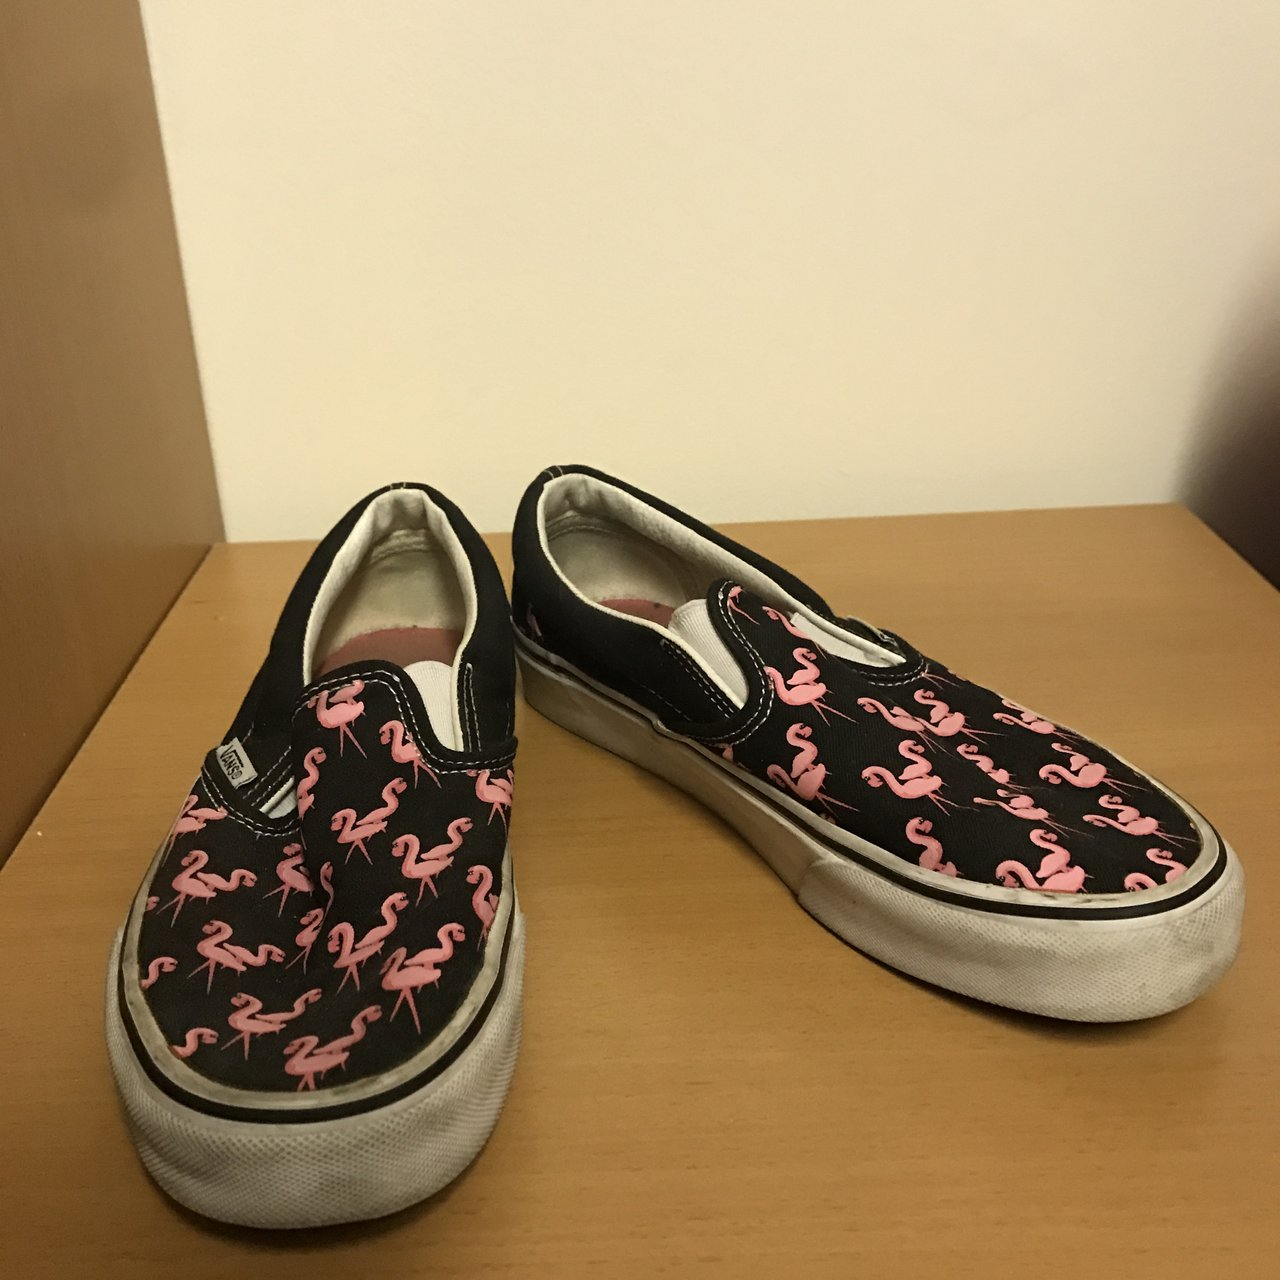 cdb2c1779fa090 Statement vans with a pink flamingo print in size 6. Very of - Depop